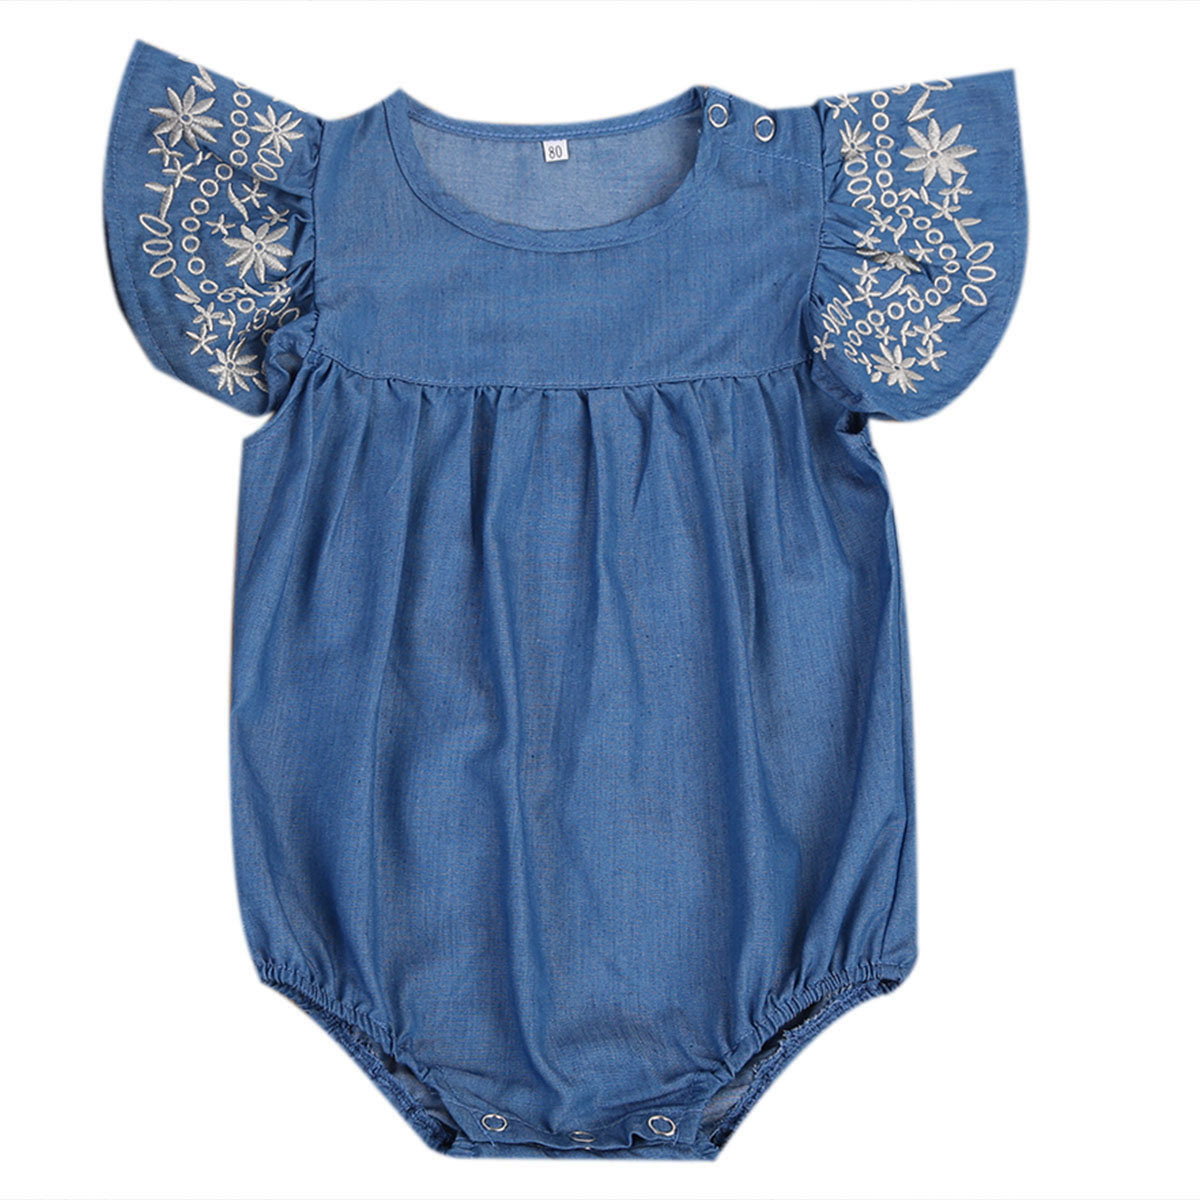 717f1a9b08d Baby Girl Romper Denim Romper Ruffles Sleeves Solid Blue Newborn Baby  Rompers Toddler Kids Jumpsuit Outfits Sunsuit